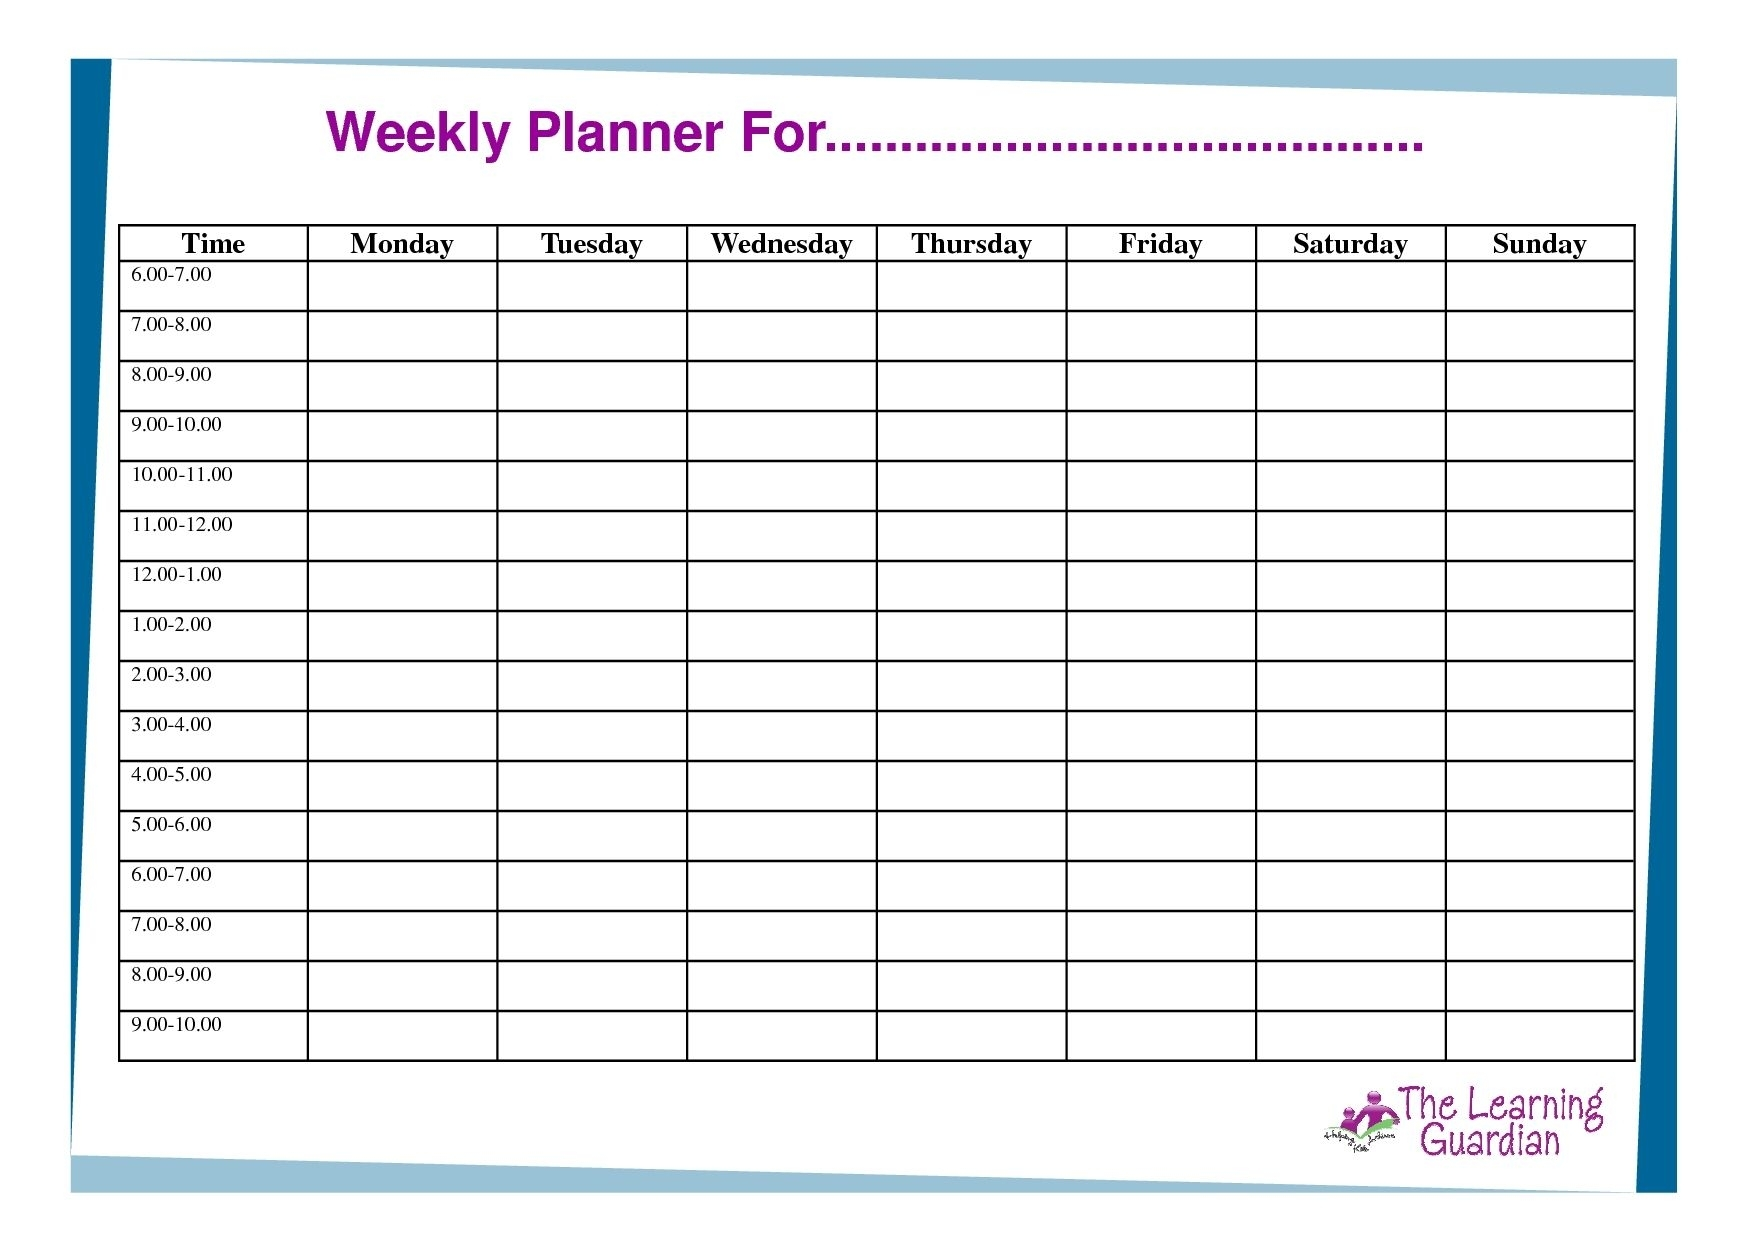 Free Printable Weekly Calendar Templates Planner For Time Incredible for 7 Day 12 Week Planner Blank